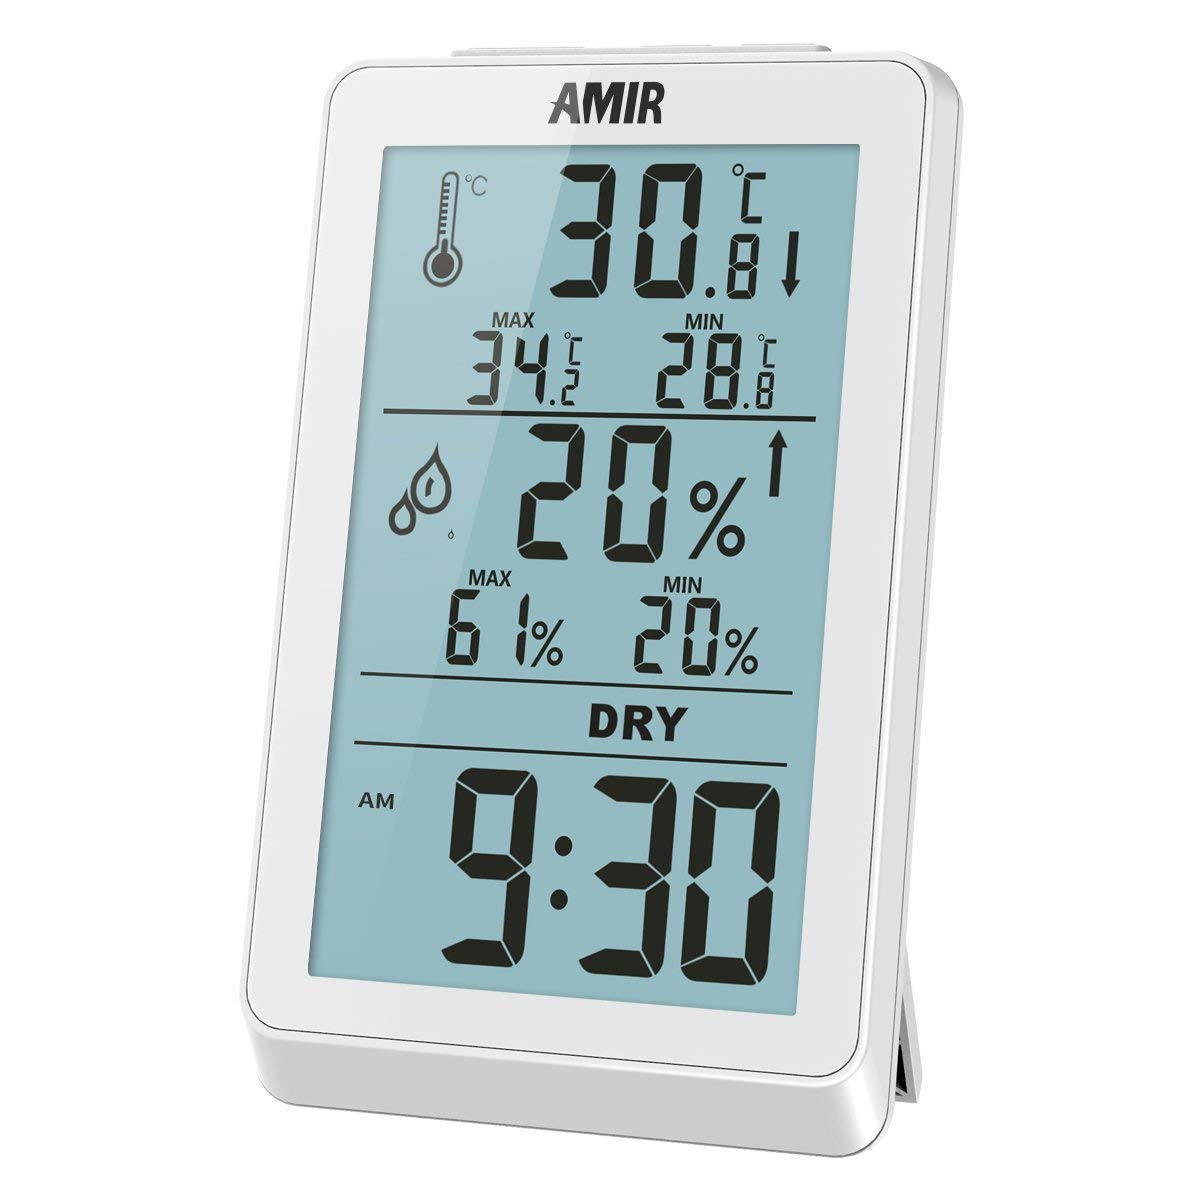 AMIR Indoor Thermometer Humidity Gauge, Digital Hygrometer, Humidity Gauge with Backlight Temperature Humidity Monitor Sensor Room Thermometer for House, Office, Baby Bedroom, etc.